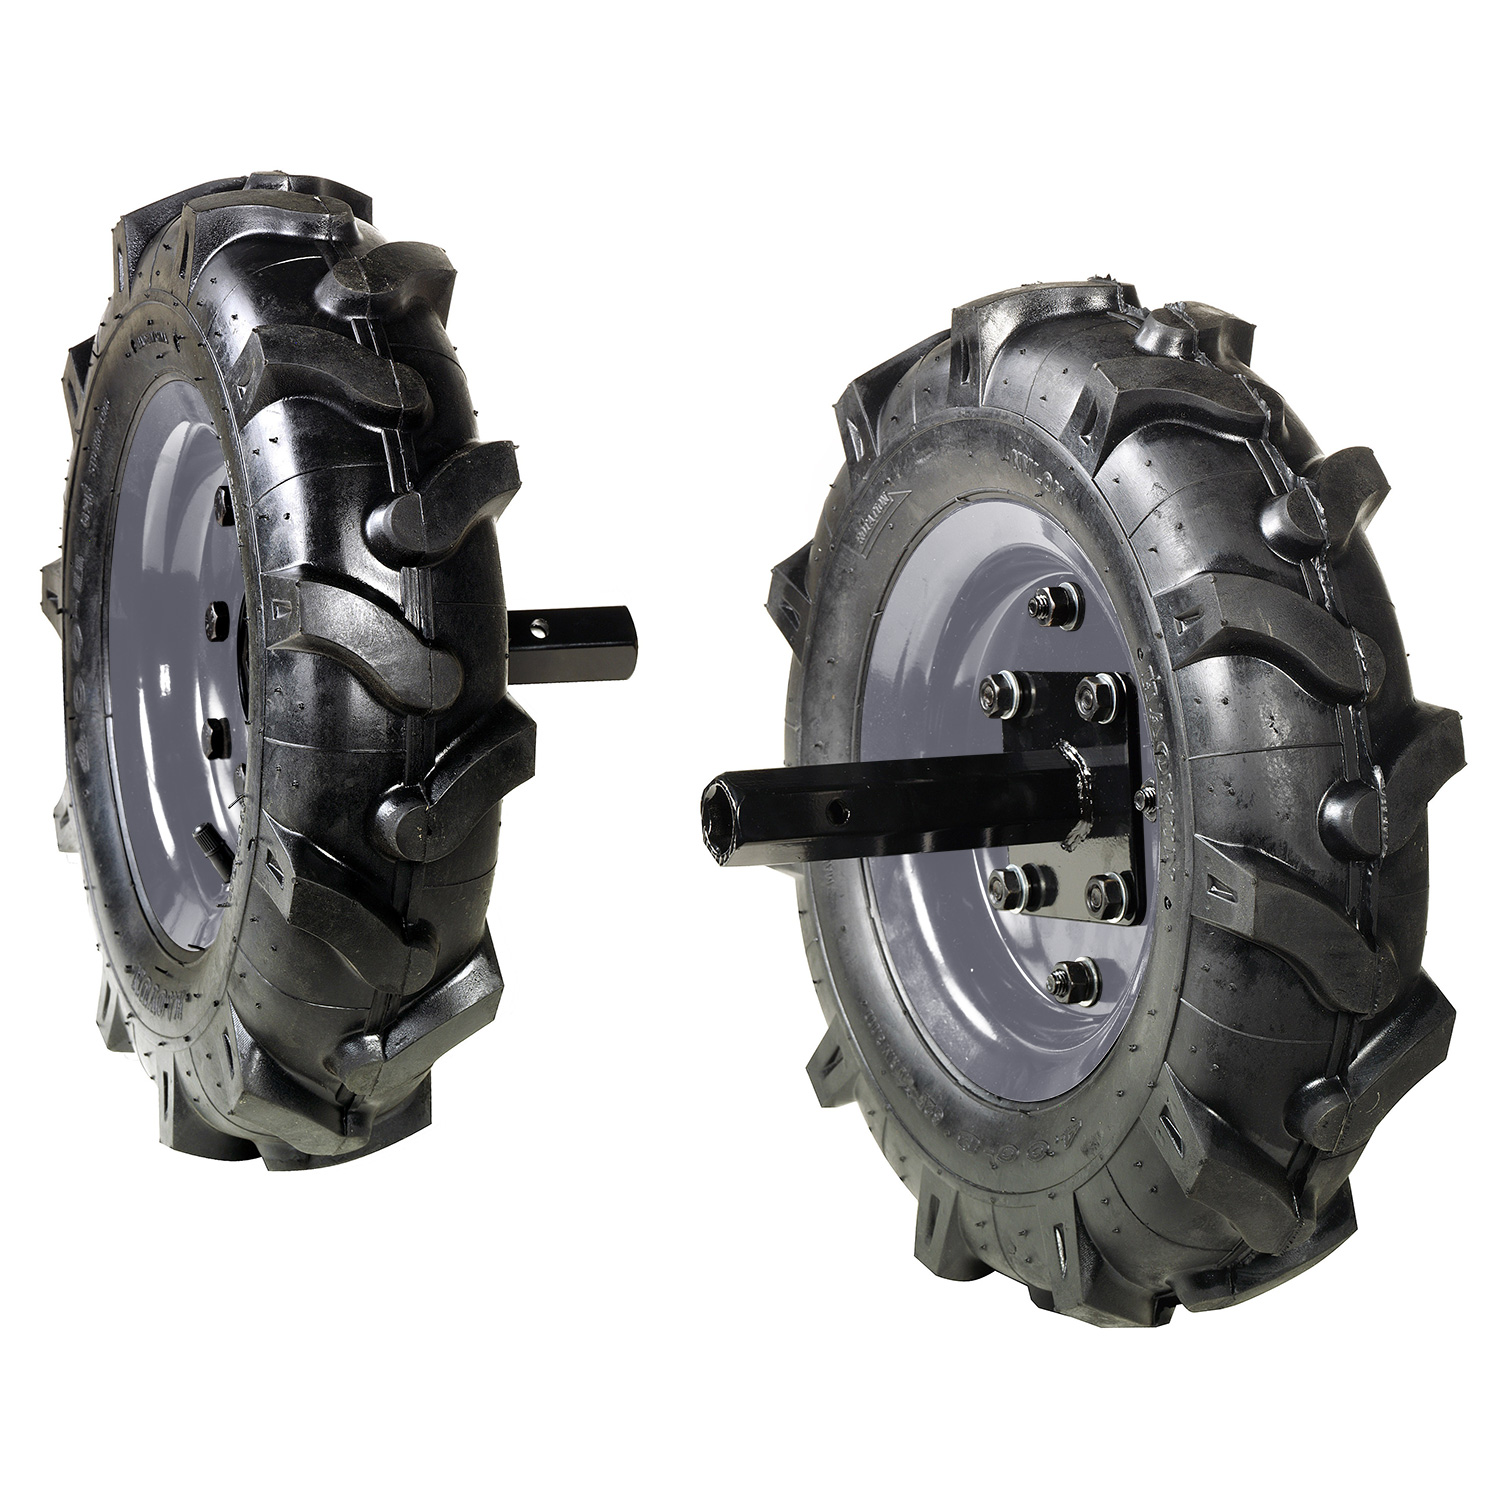 Wheels for tiller DATW 2